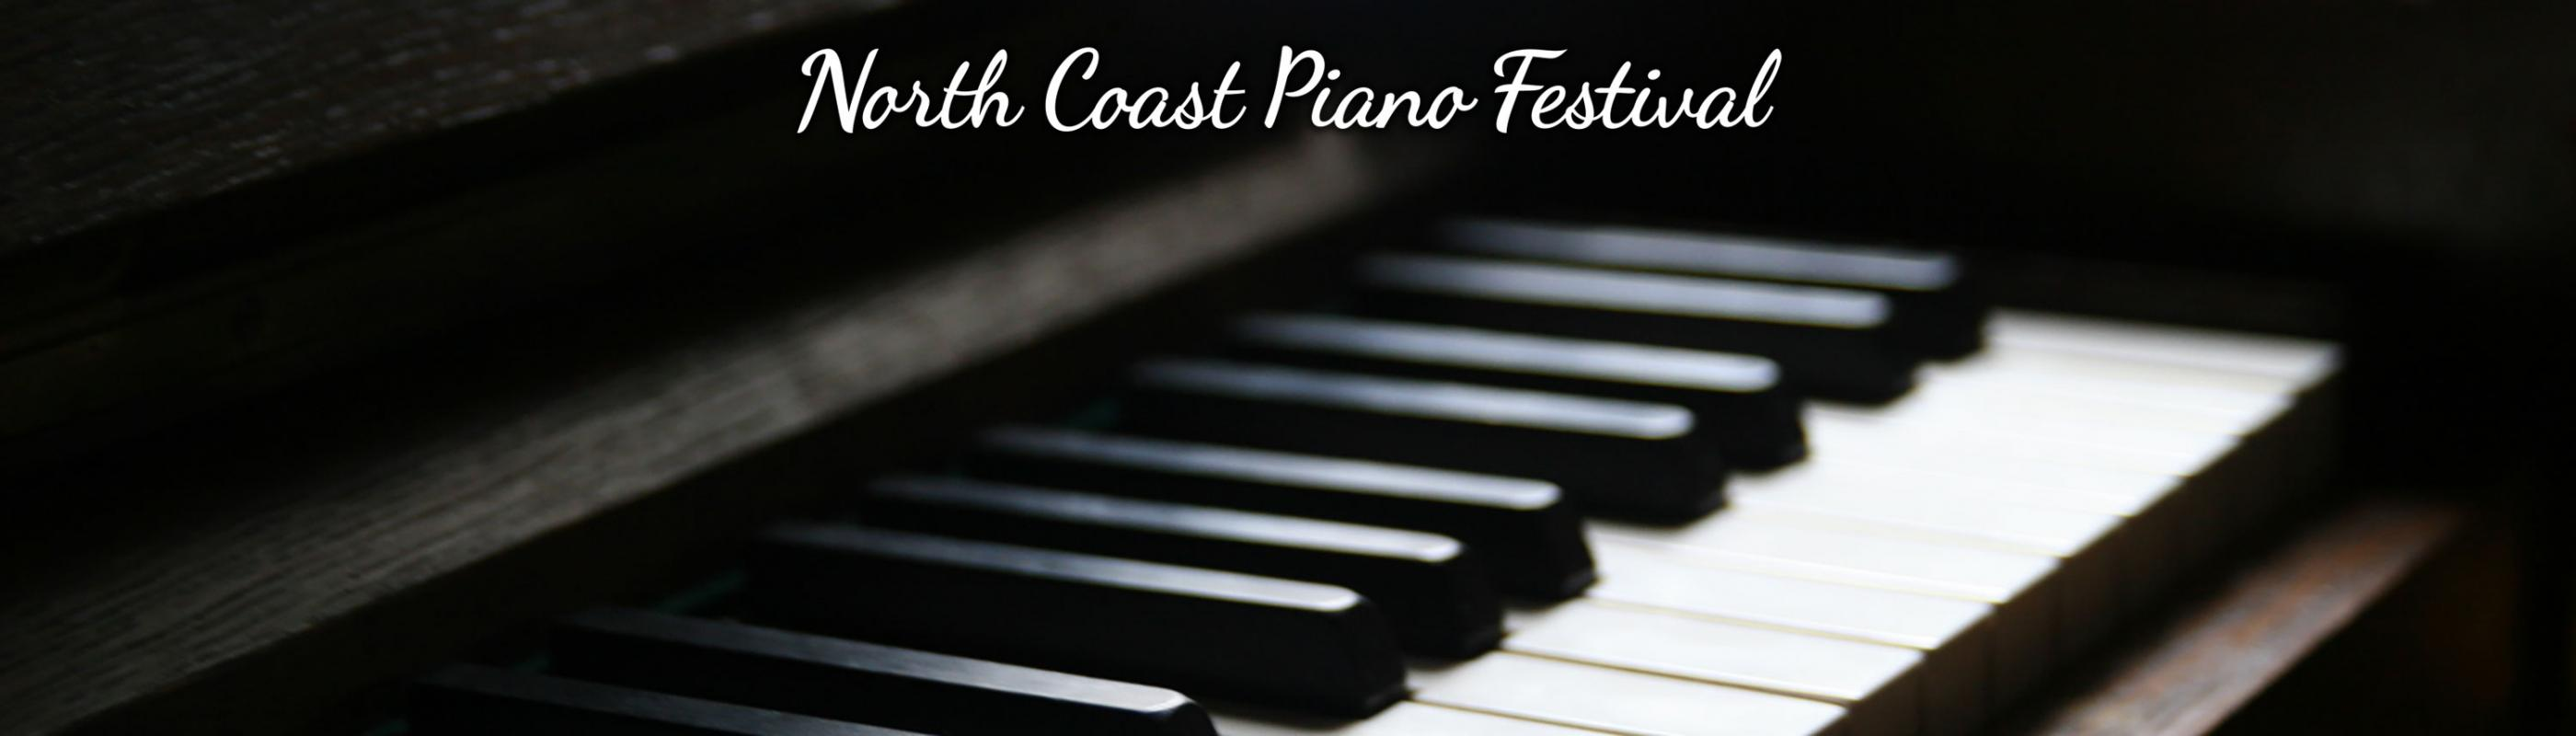 North Coast Piano Festival